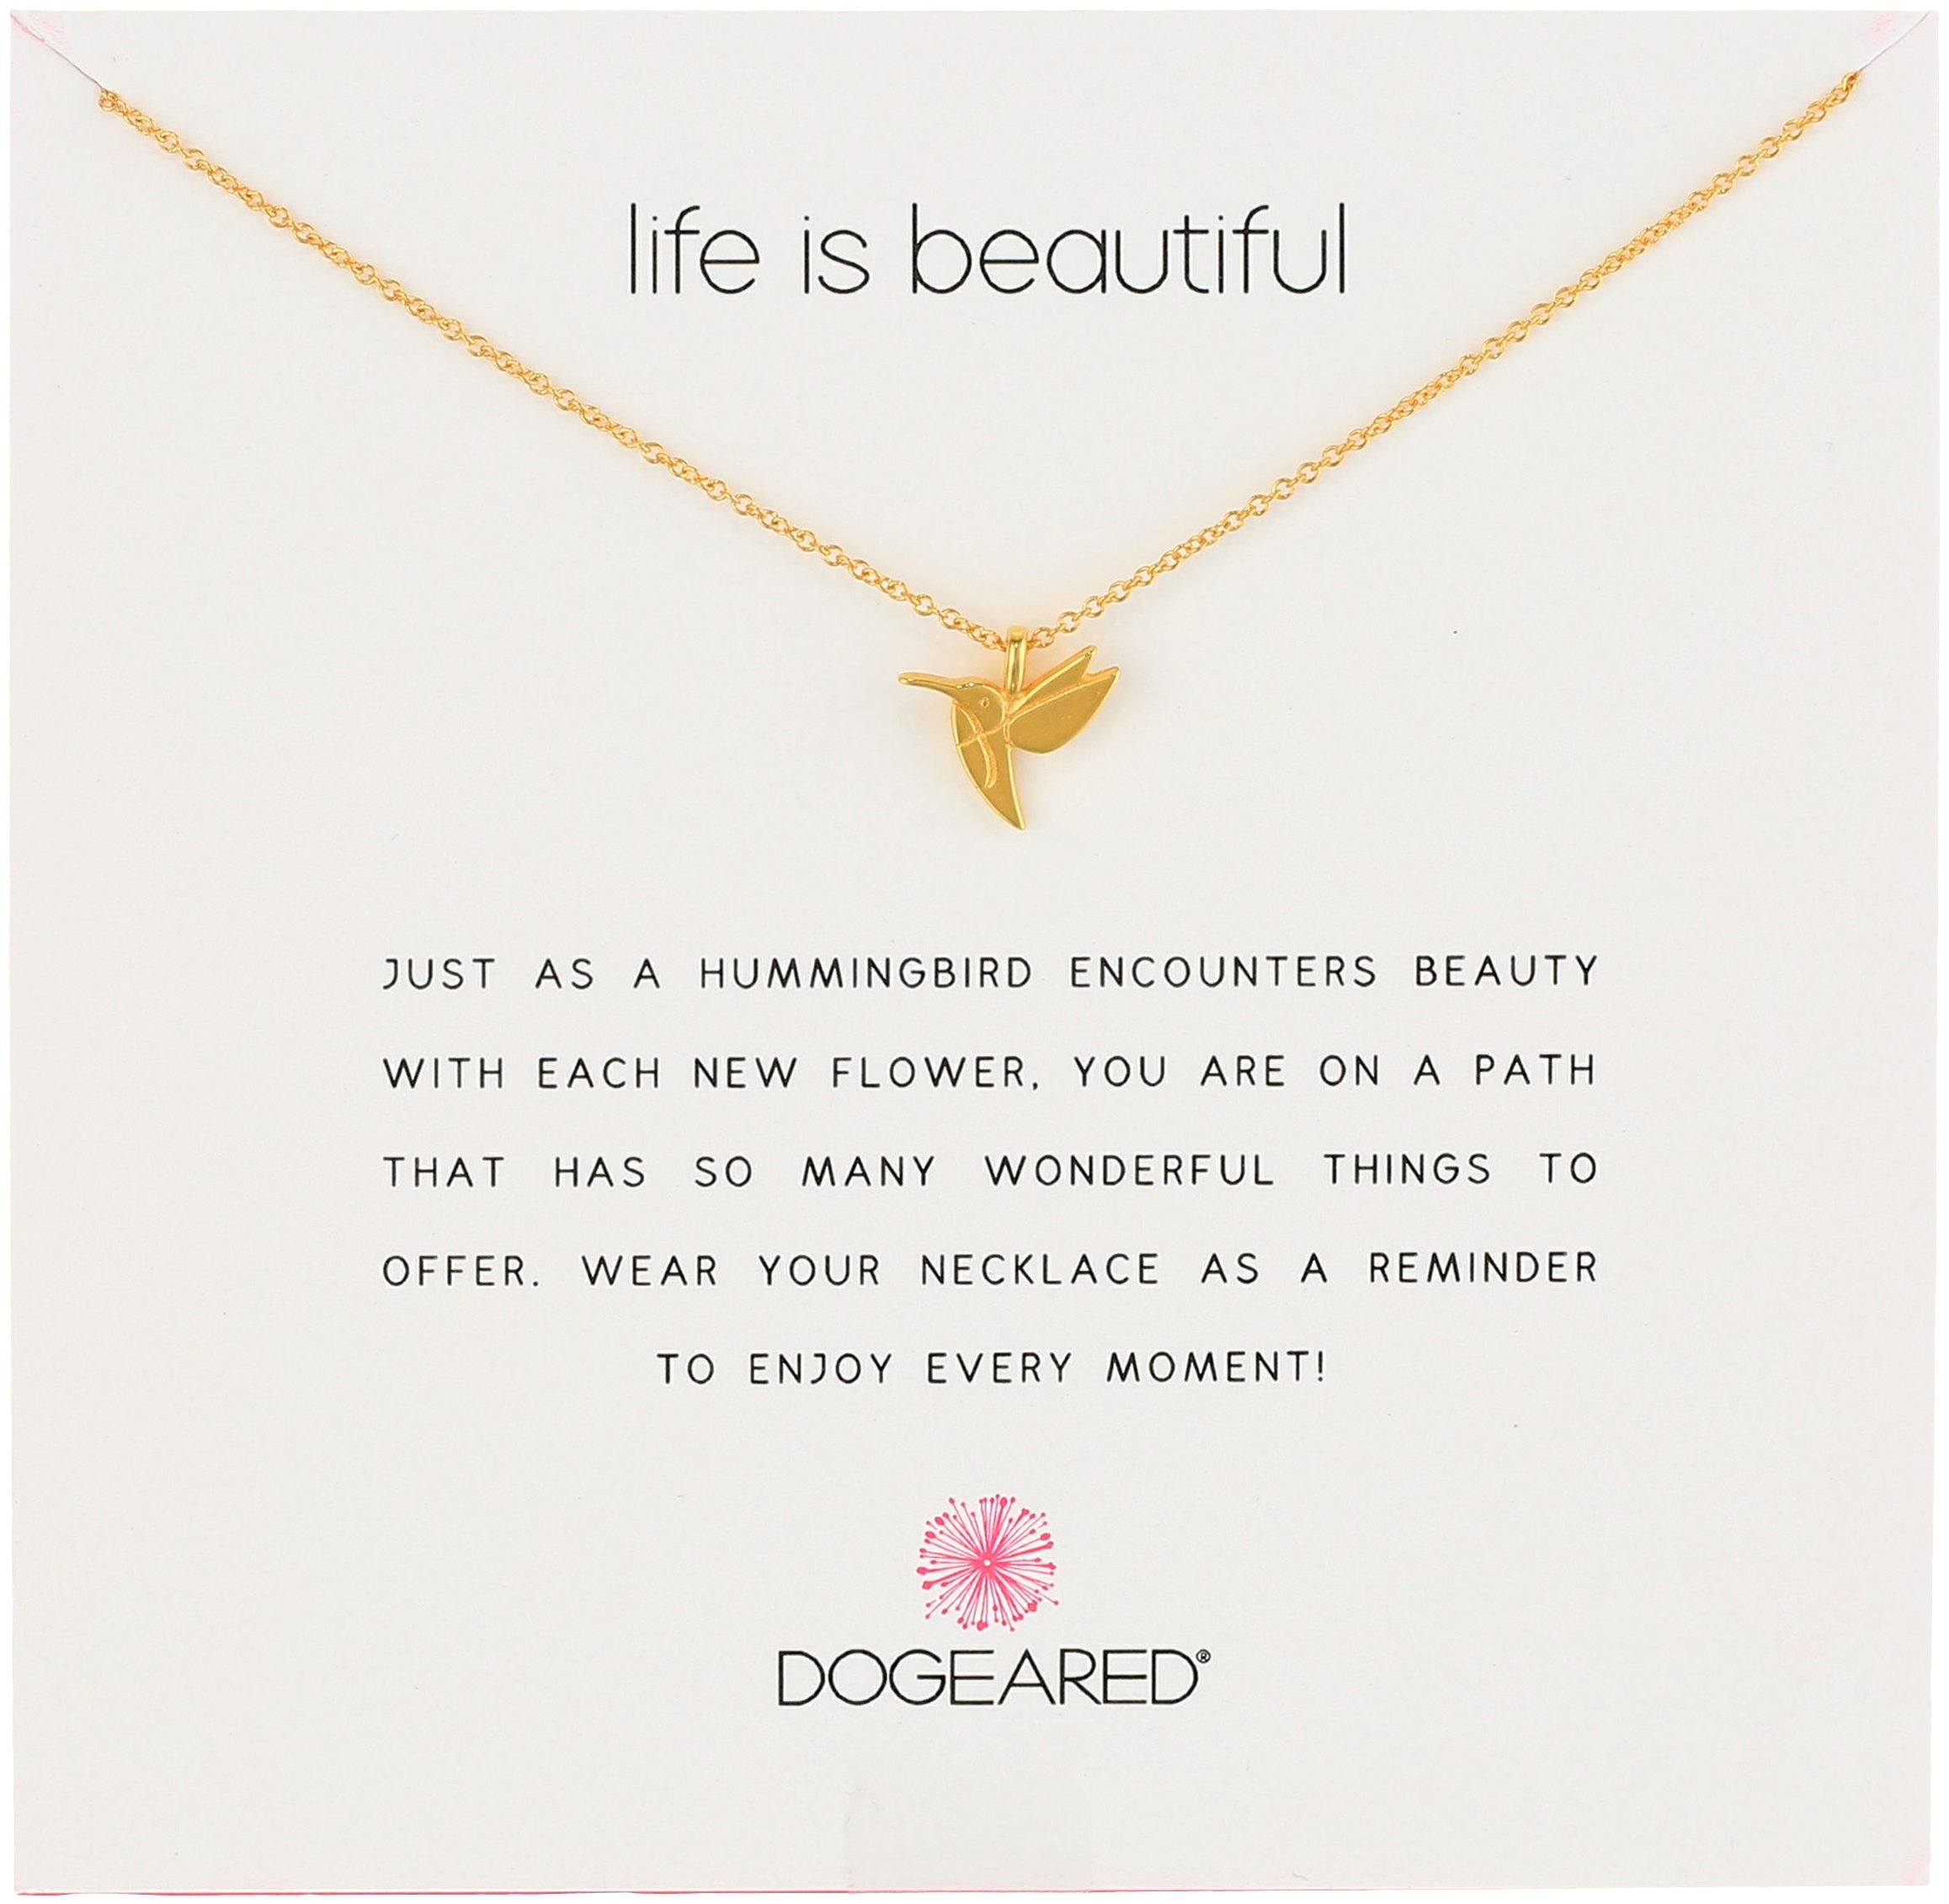 Dogeared Reminders- Life Is Beautiful Gold Dipped Sterling Silver Hummingbird Charm Necklace, 16''+2'' Extender